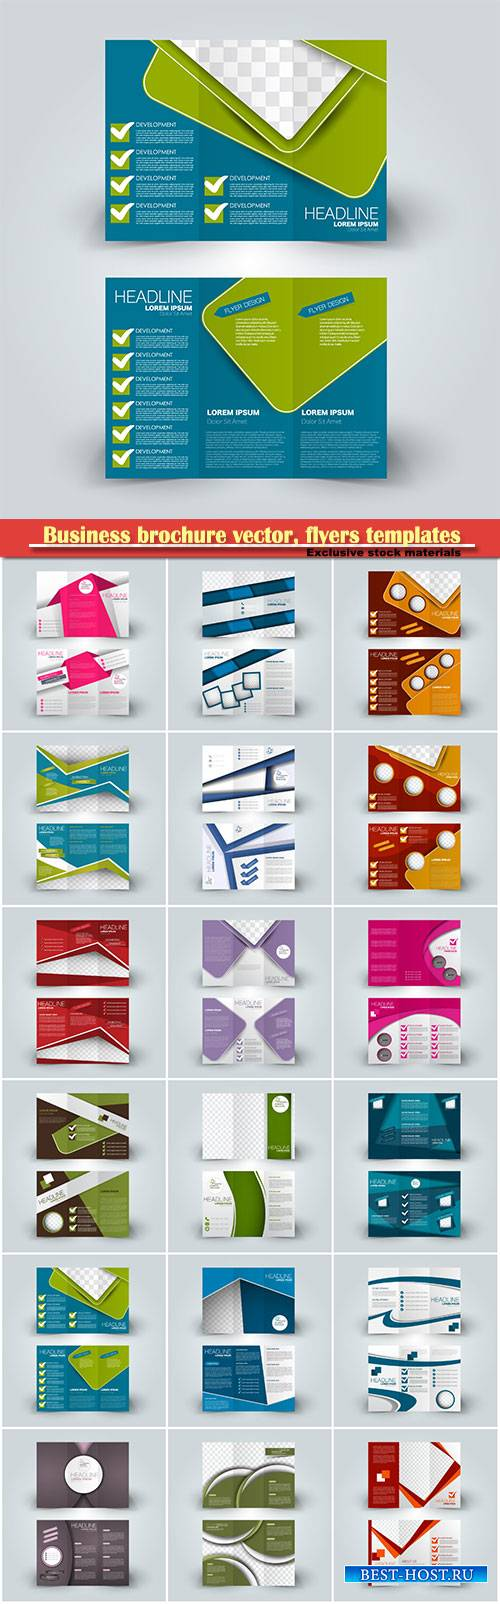 Business brochure vector, flyers templates, report cover design # 99